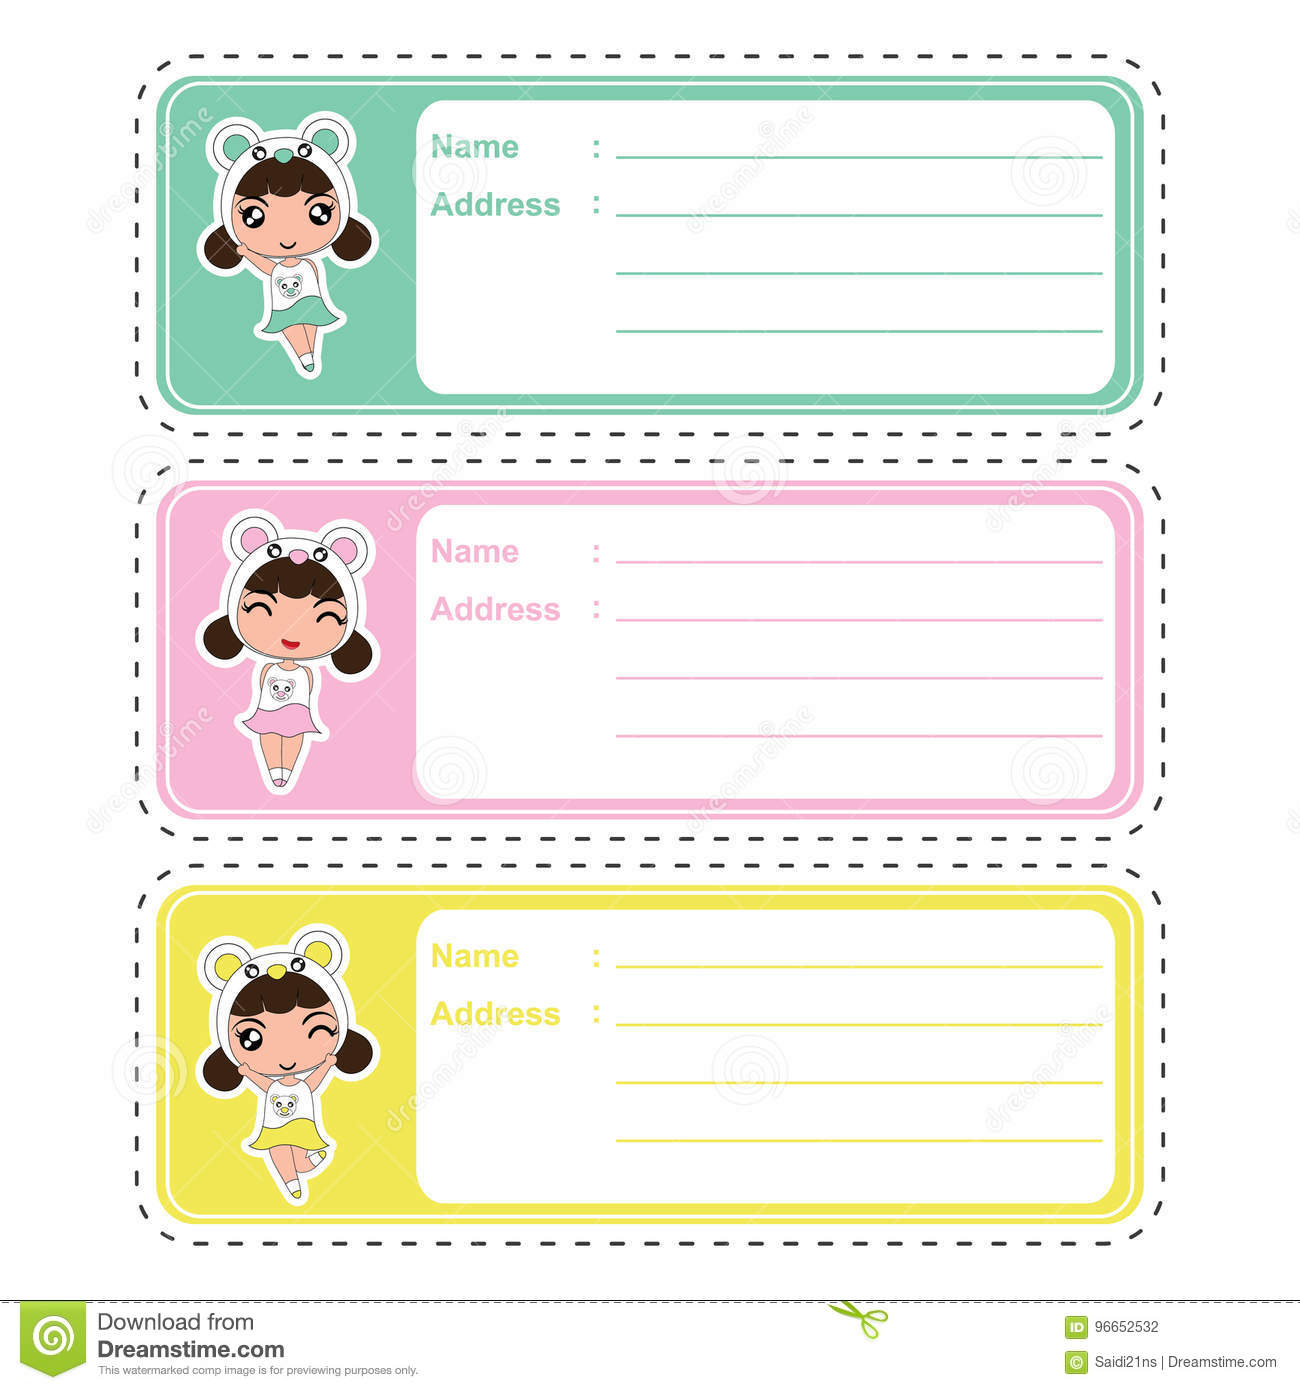 Cute address label cartoon design with cute colorful panda girls on pastel color suitable for kid address label